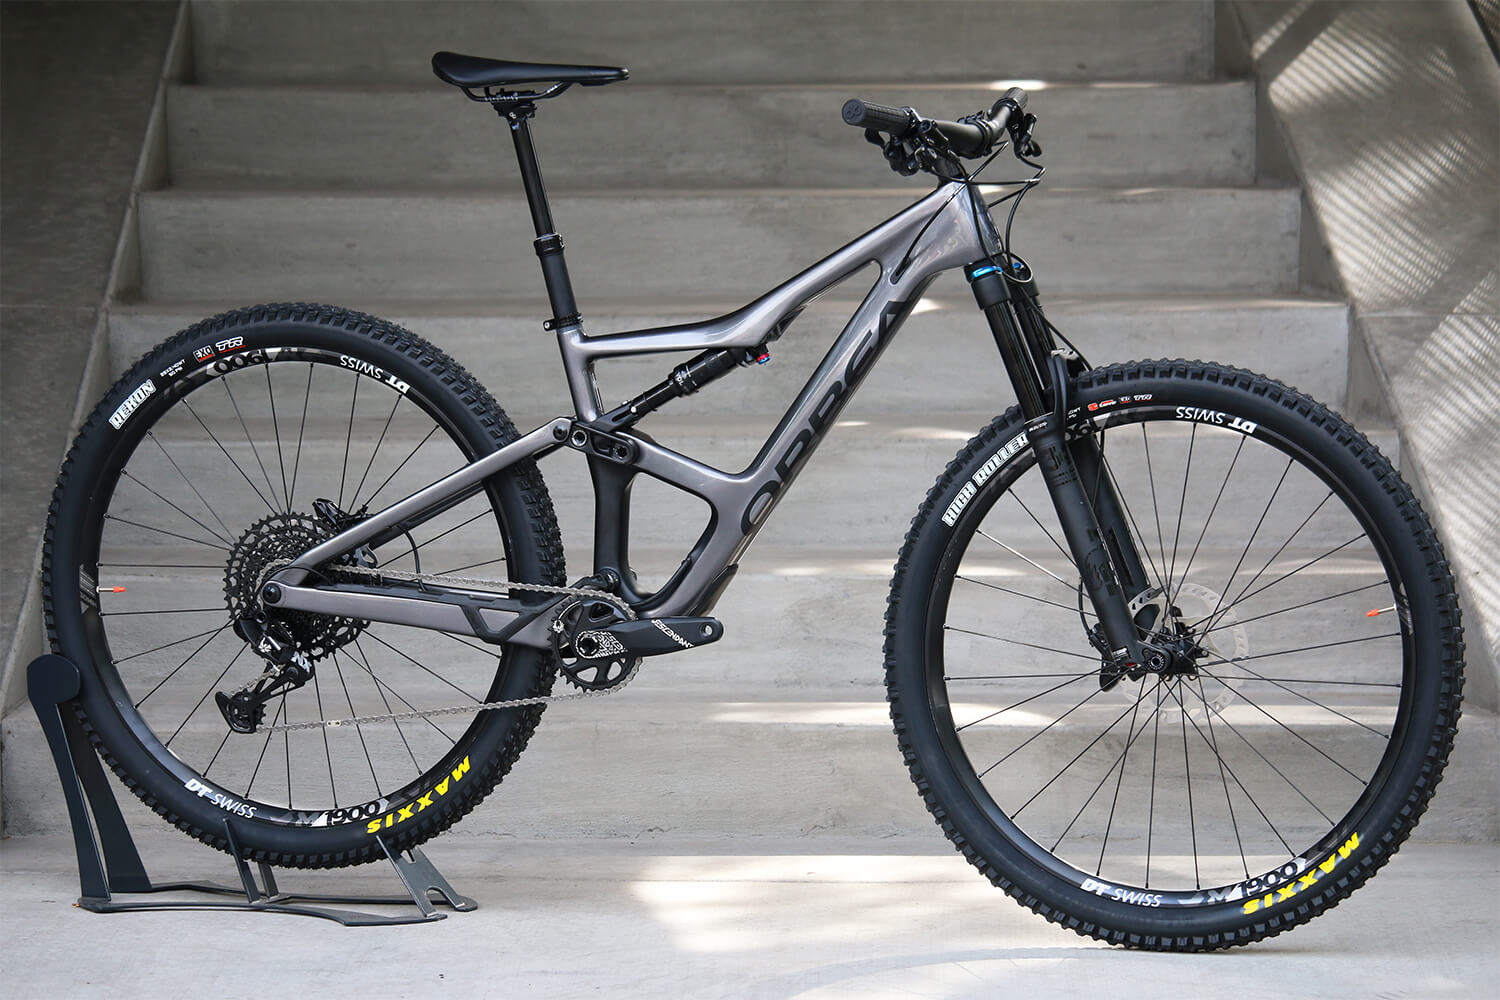 2020 Orbea Occam - Contender Bicycles